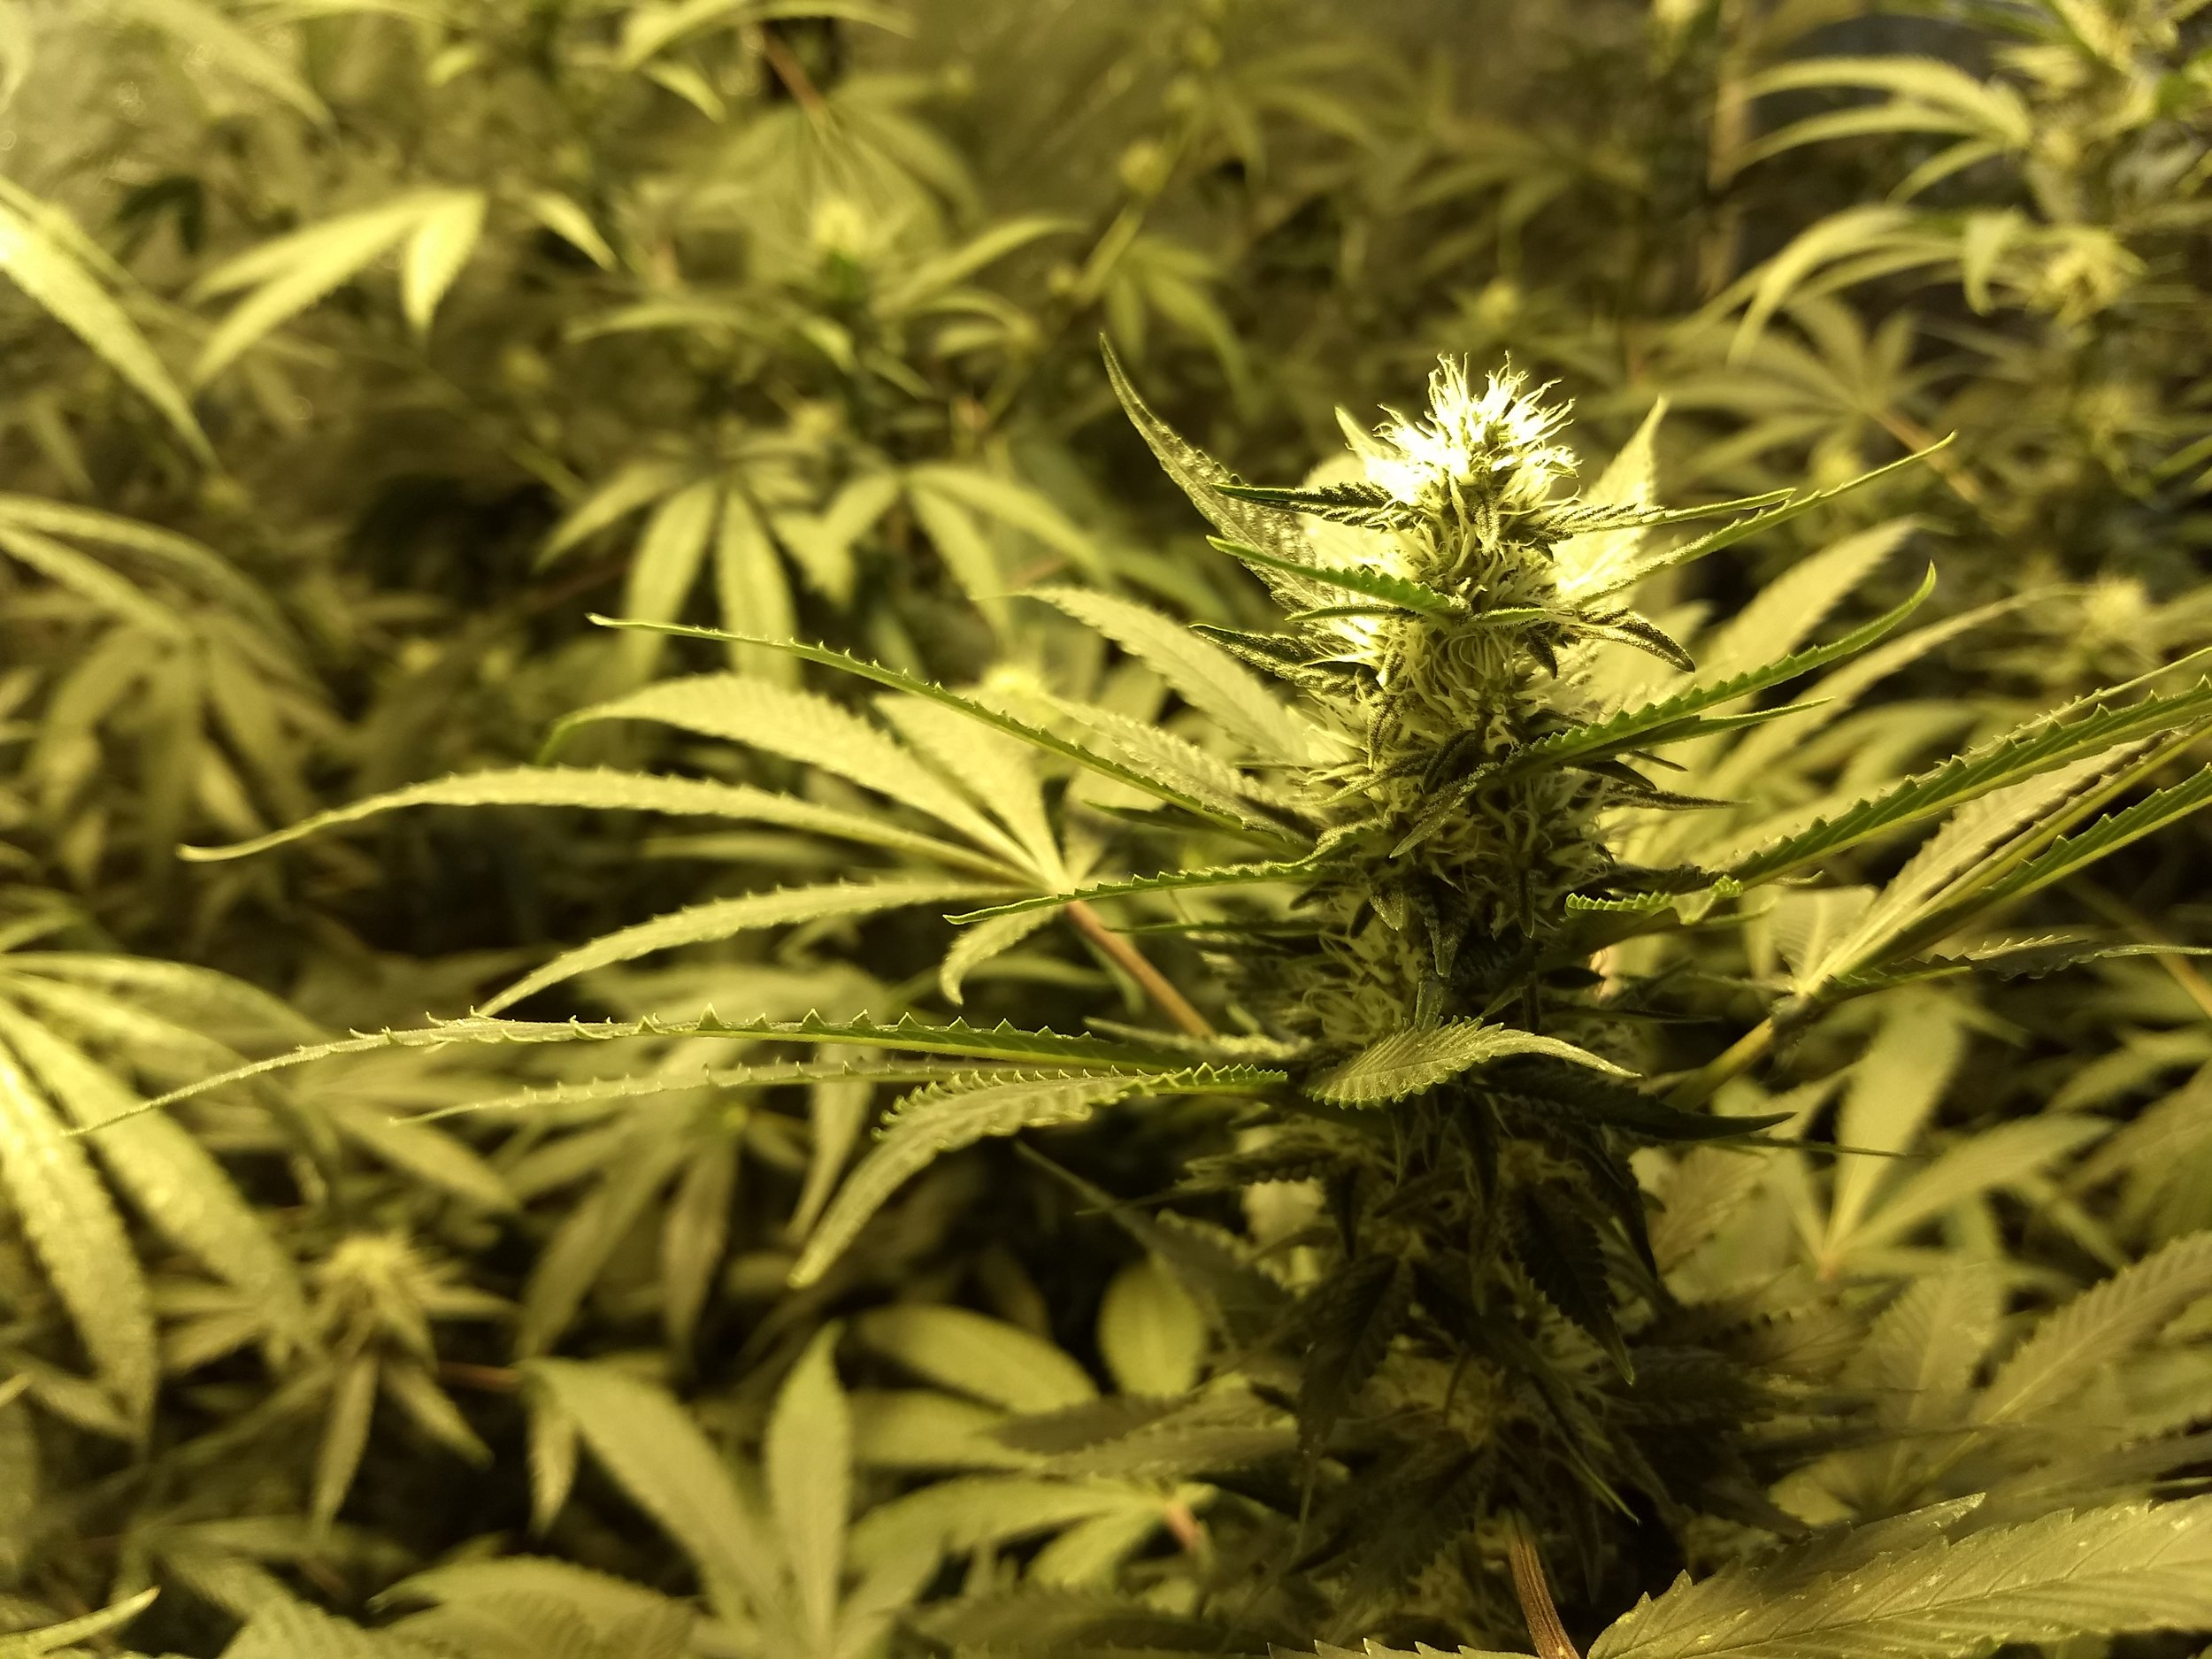 Indoor Grow - Our indoor grows are almost complete. We use these mostly for testing purposes.